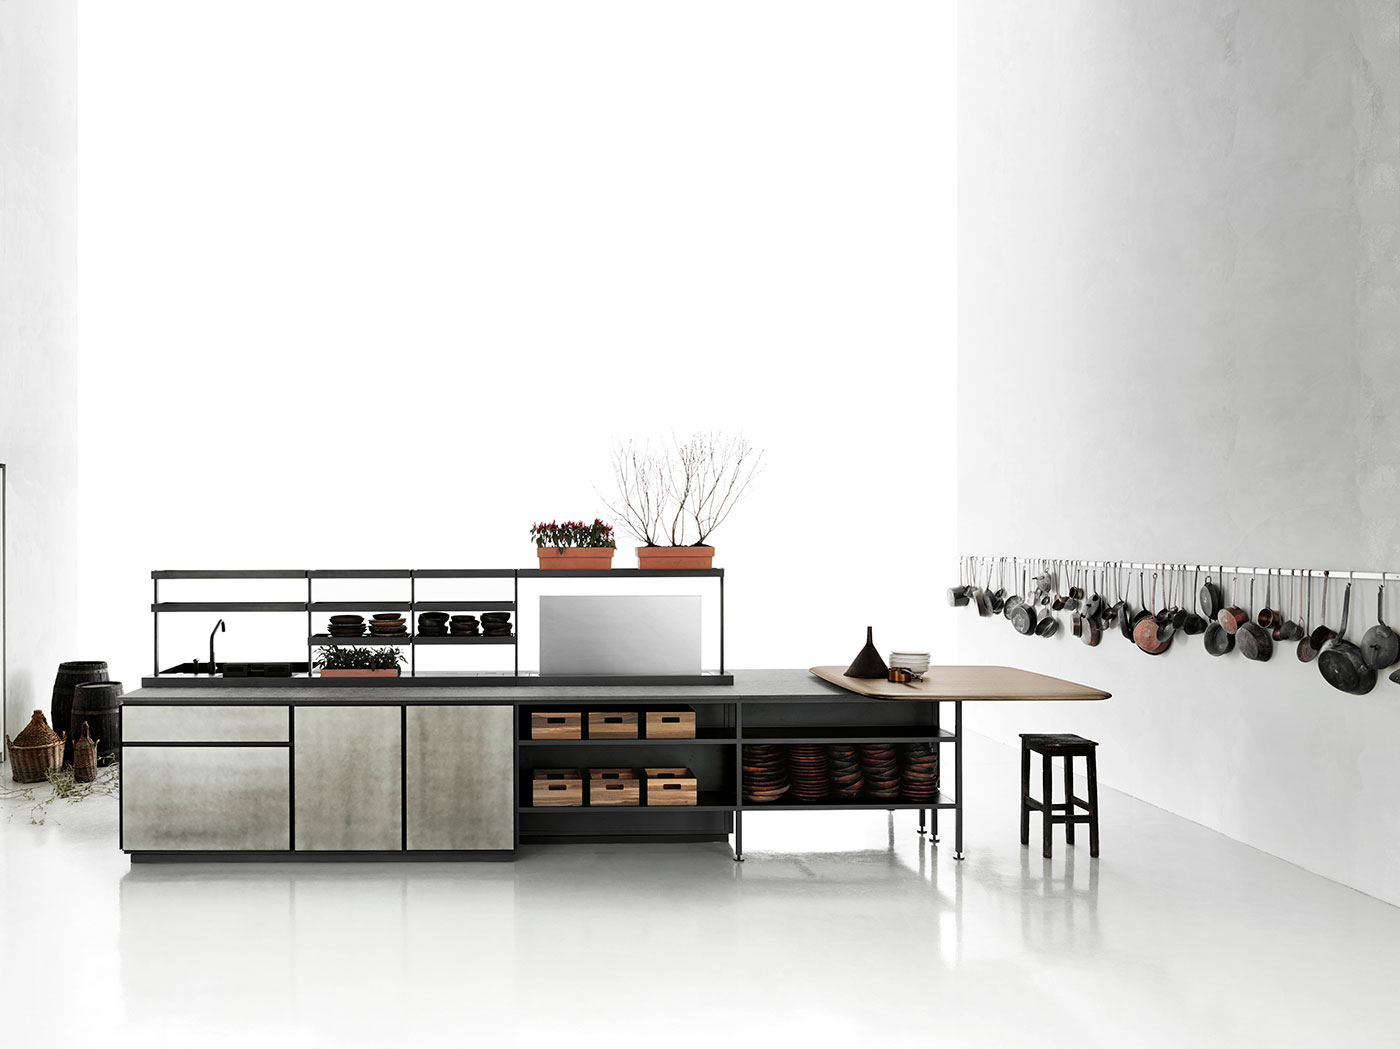 Obegi Home Boffi Salinas kitchen By Tommasosartori High